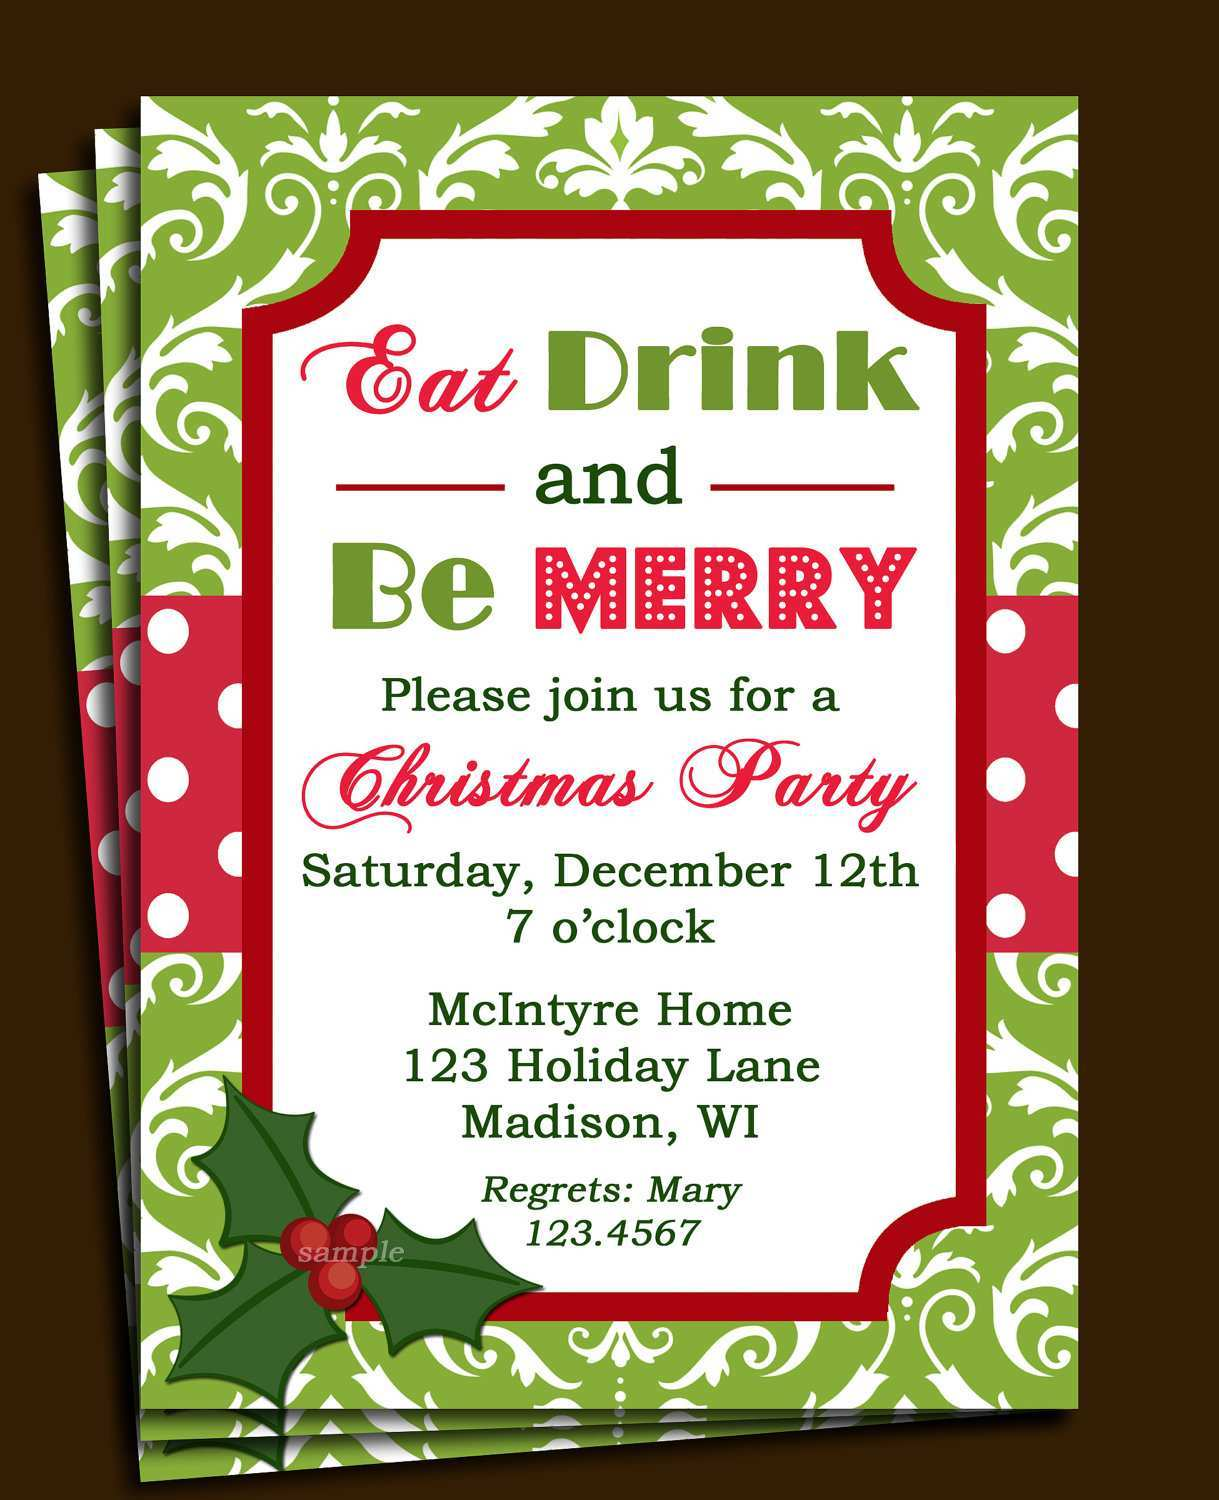 31 Standard Elegant Christmas Party Invitation Template Free Download Photo by Elegant Christmas Party Invitation Template Free Download